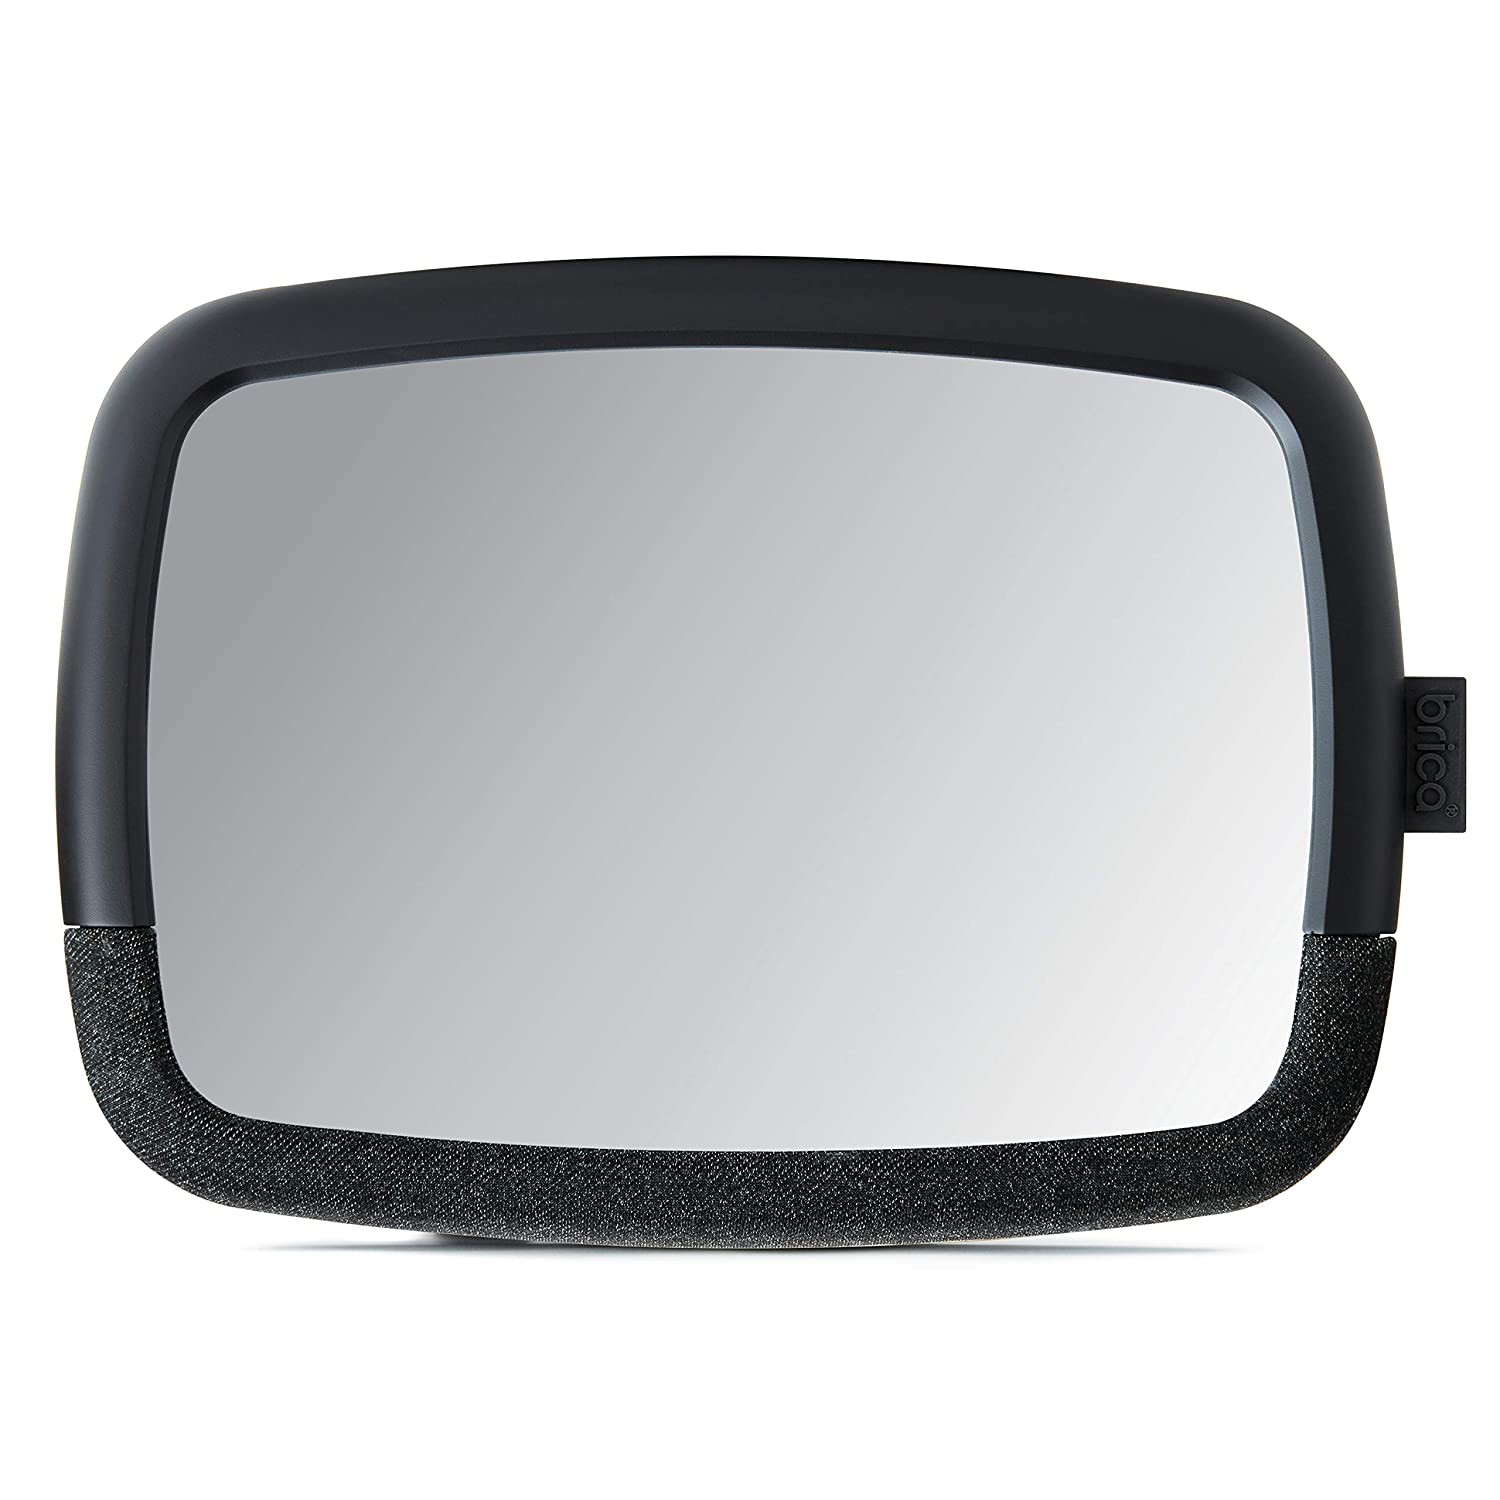 Munchkin Brica 360 Pivot Baby in-Sight Wide-Angle Adjustable Car Mirror, Crash Tested & Shatter Resistant, Black